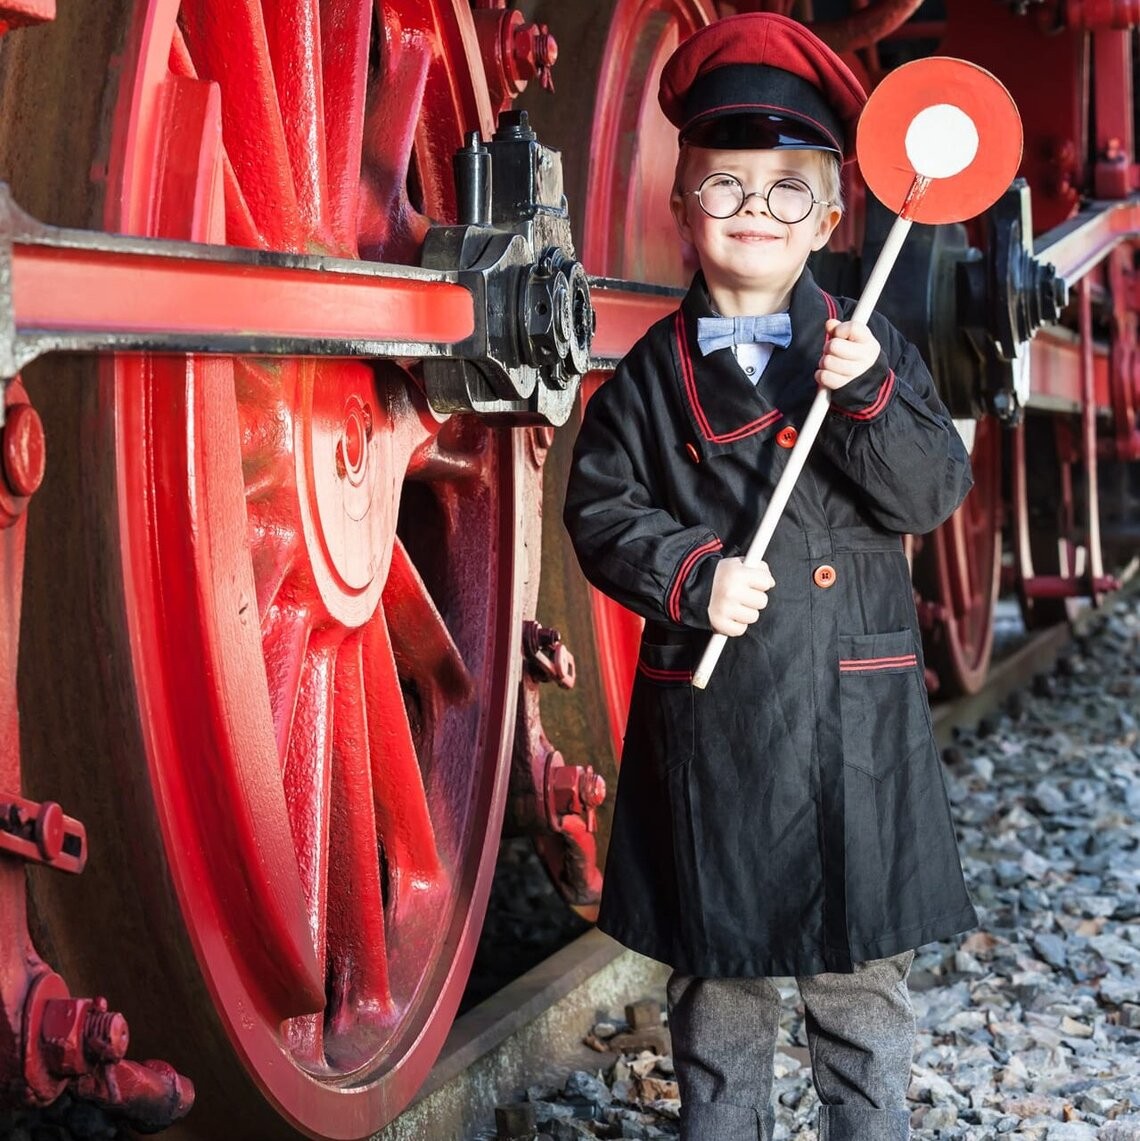 A young boy is standing next to the wheel of a large steam locomotive.